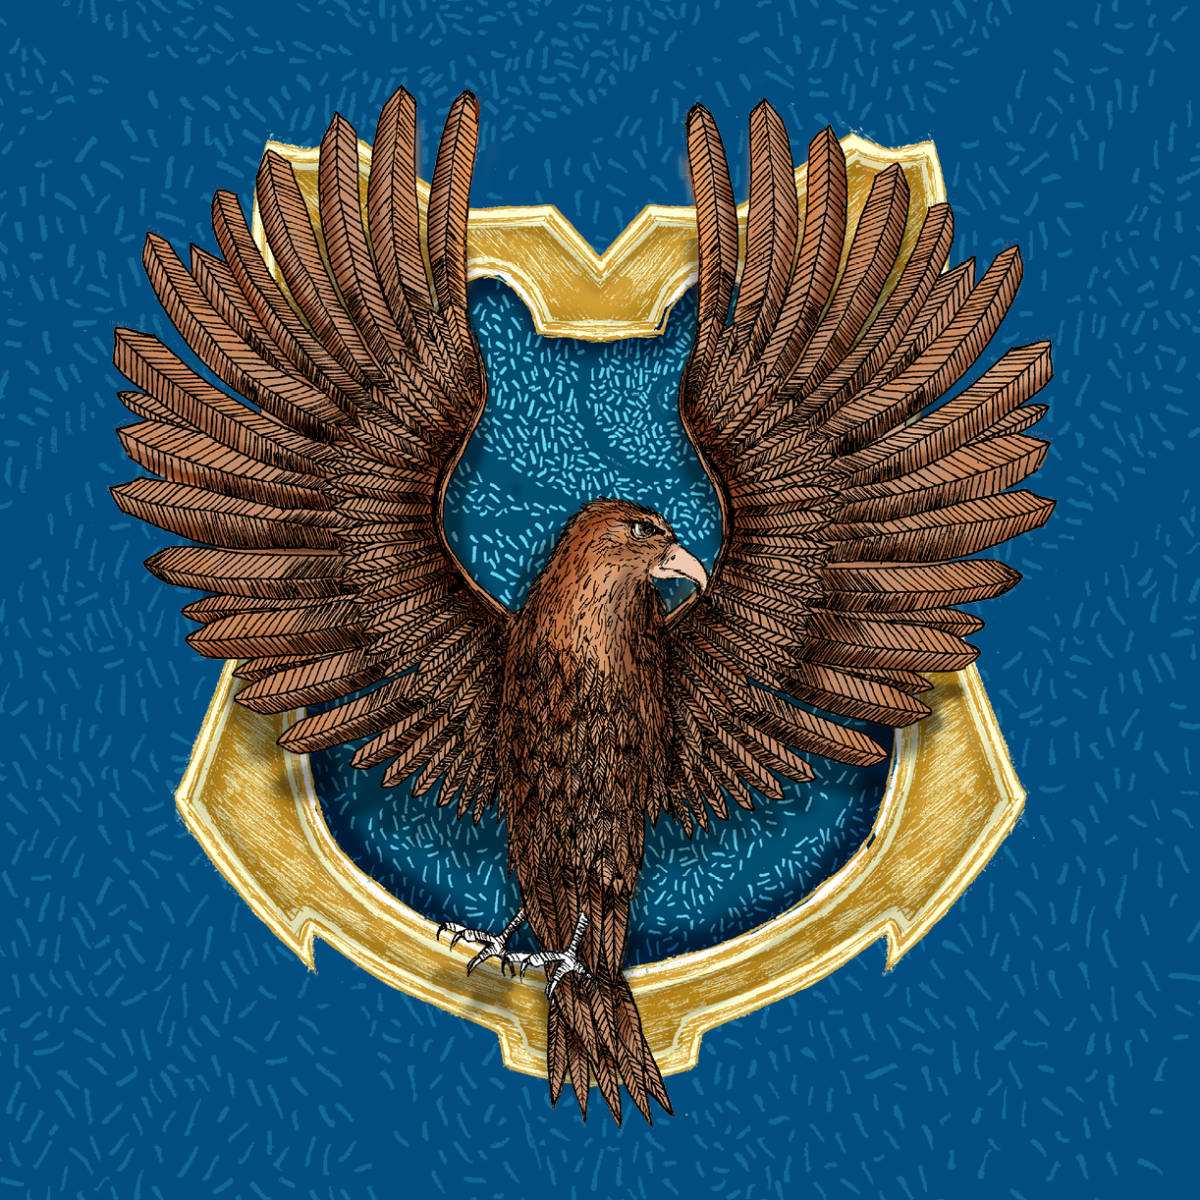 Hogwarts Houses Ravenclaw Pottermore